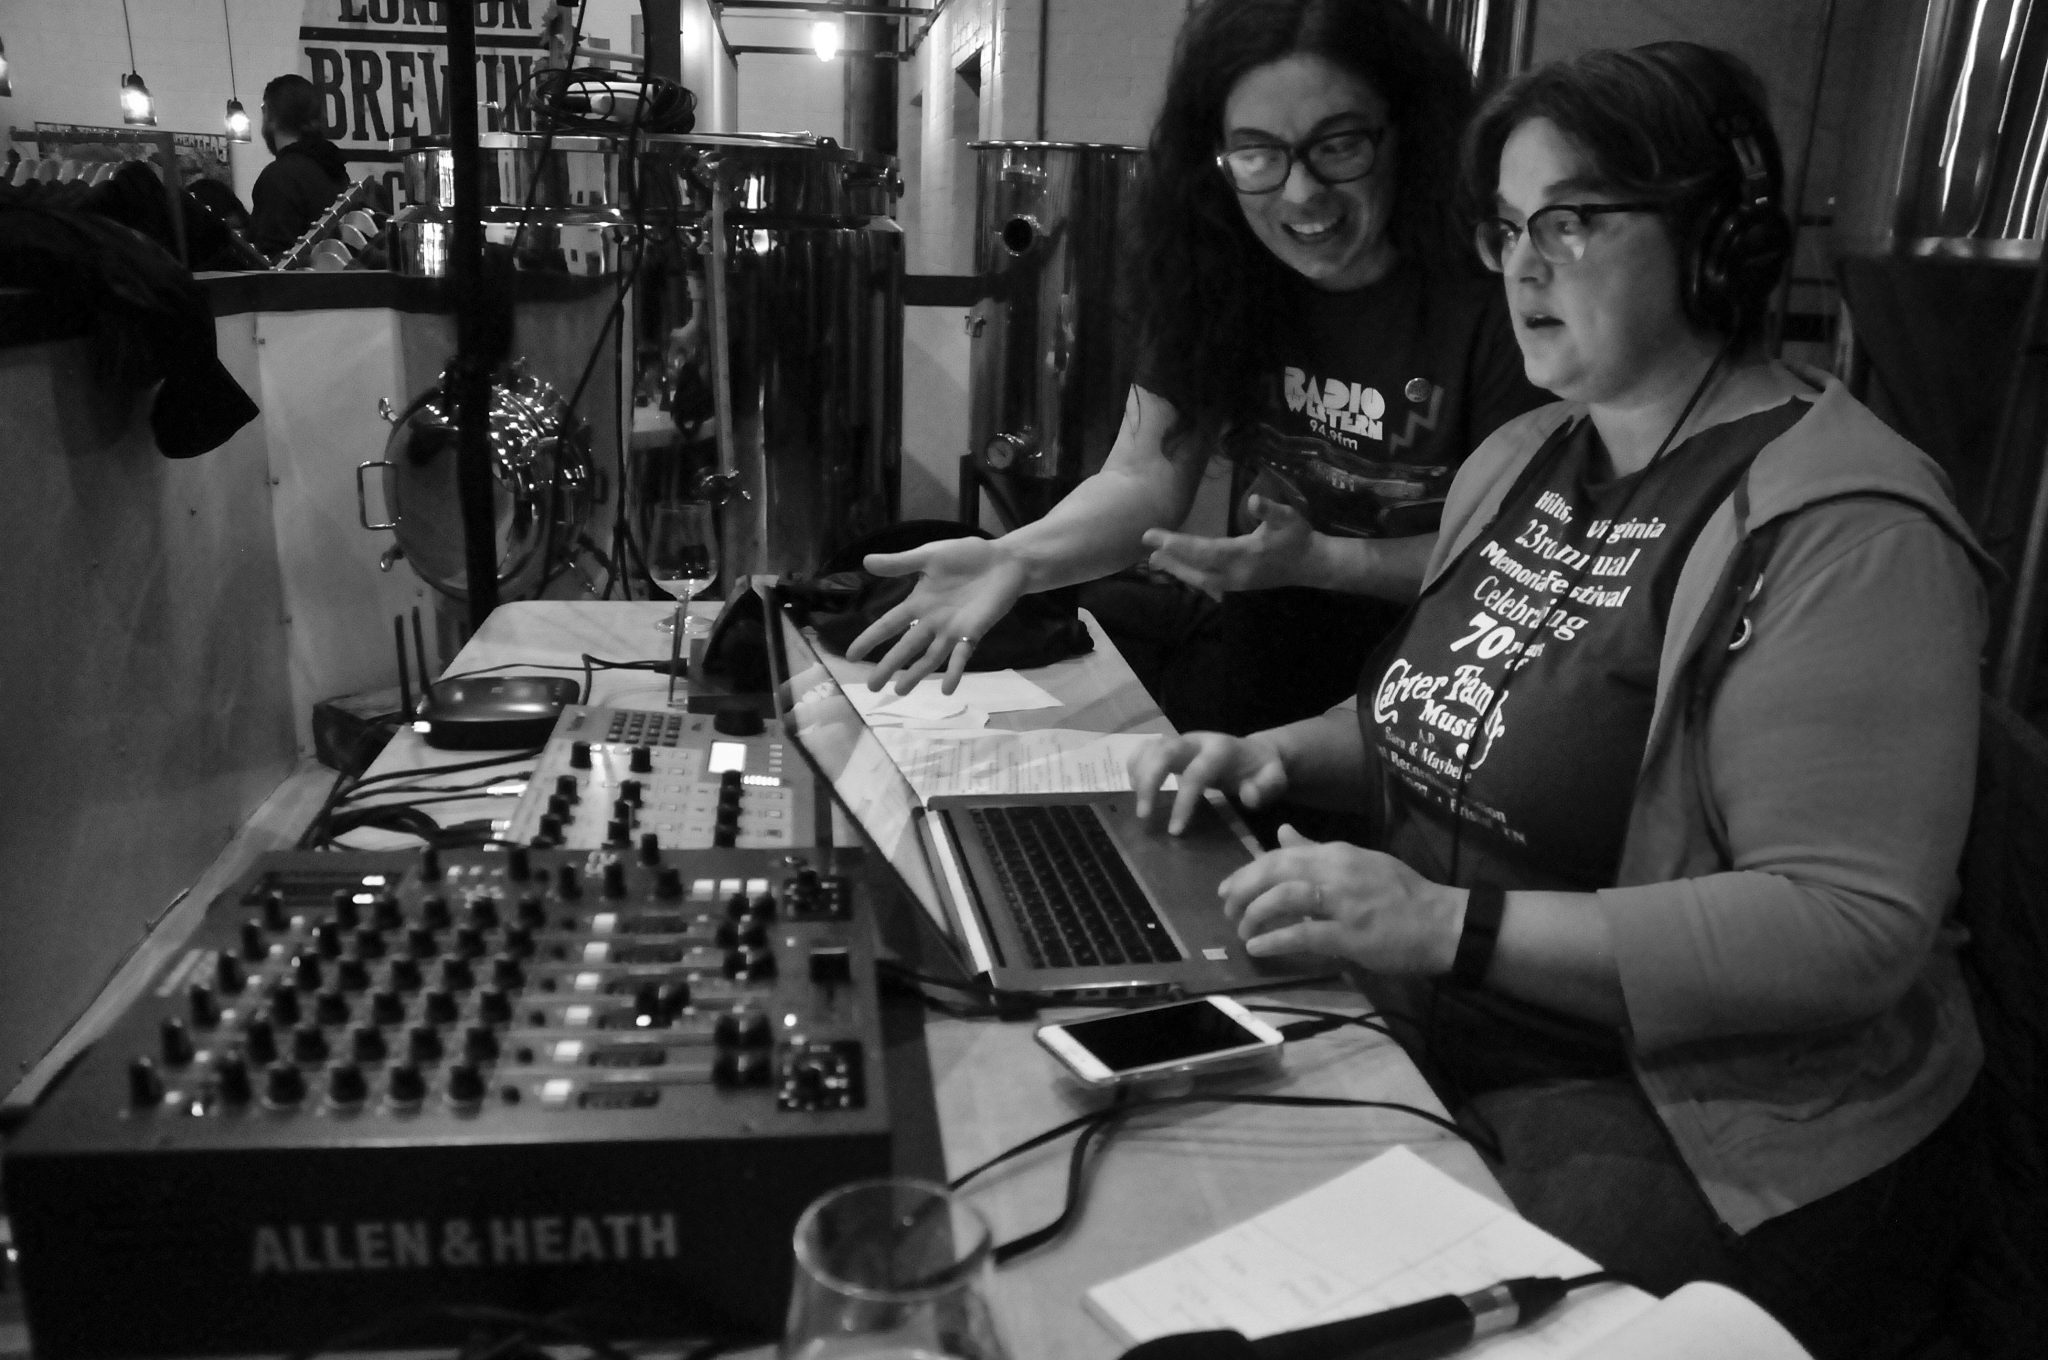 Radio Western held a live to air fundraiser from the London Brewing Co-op.